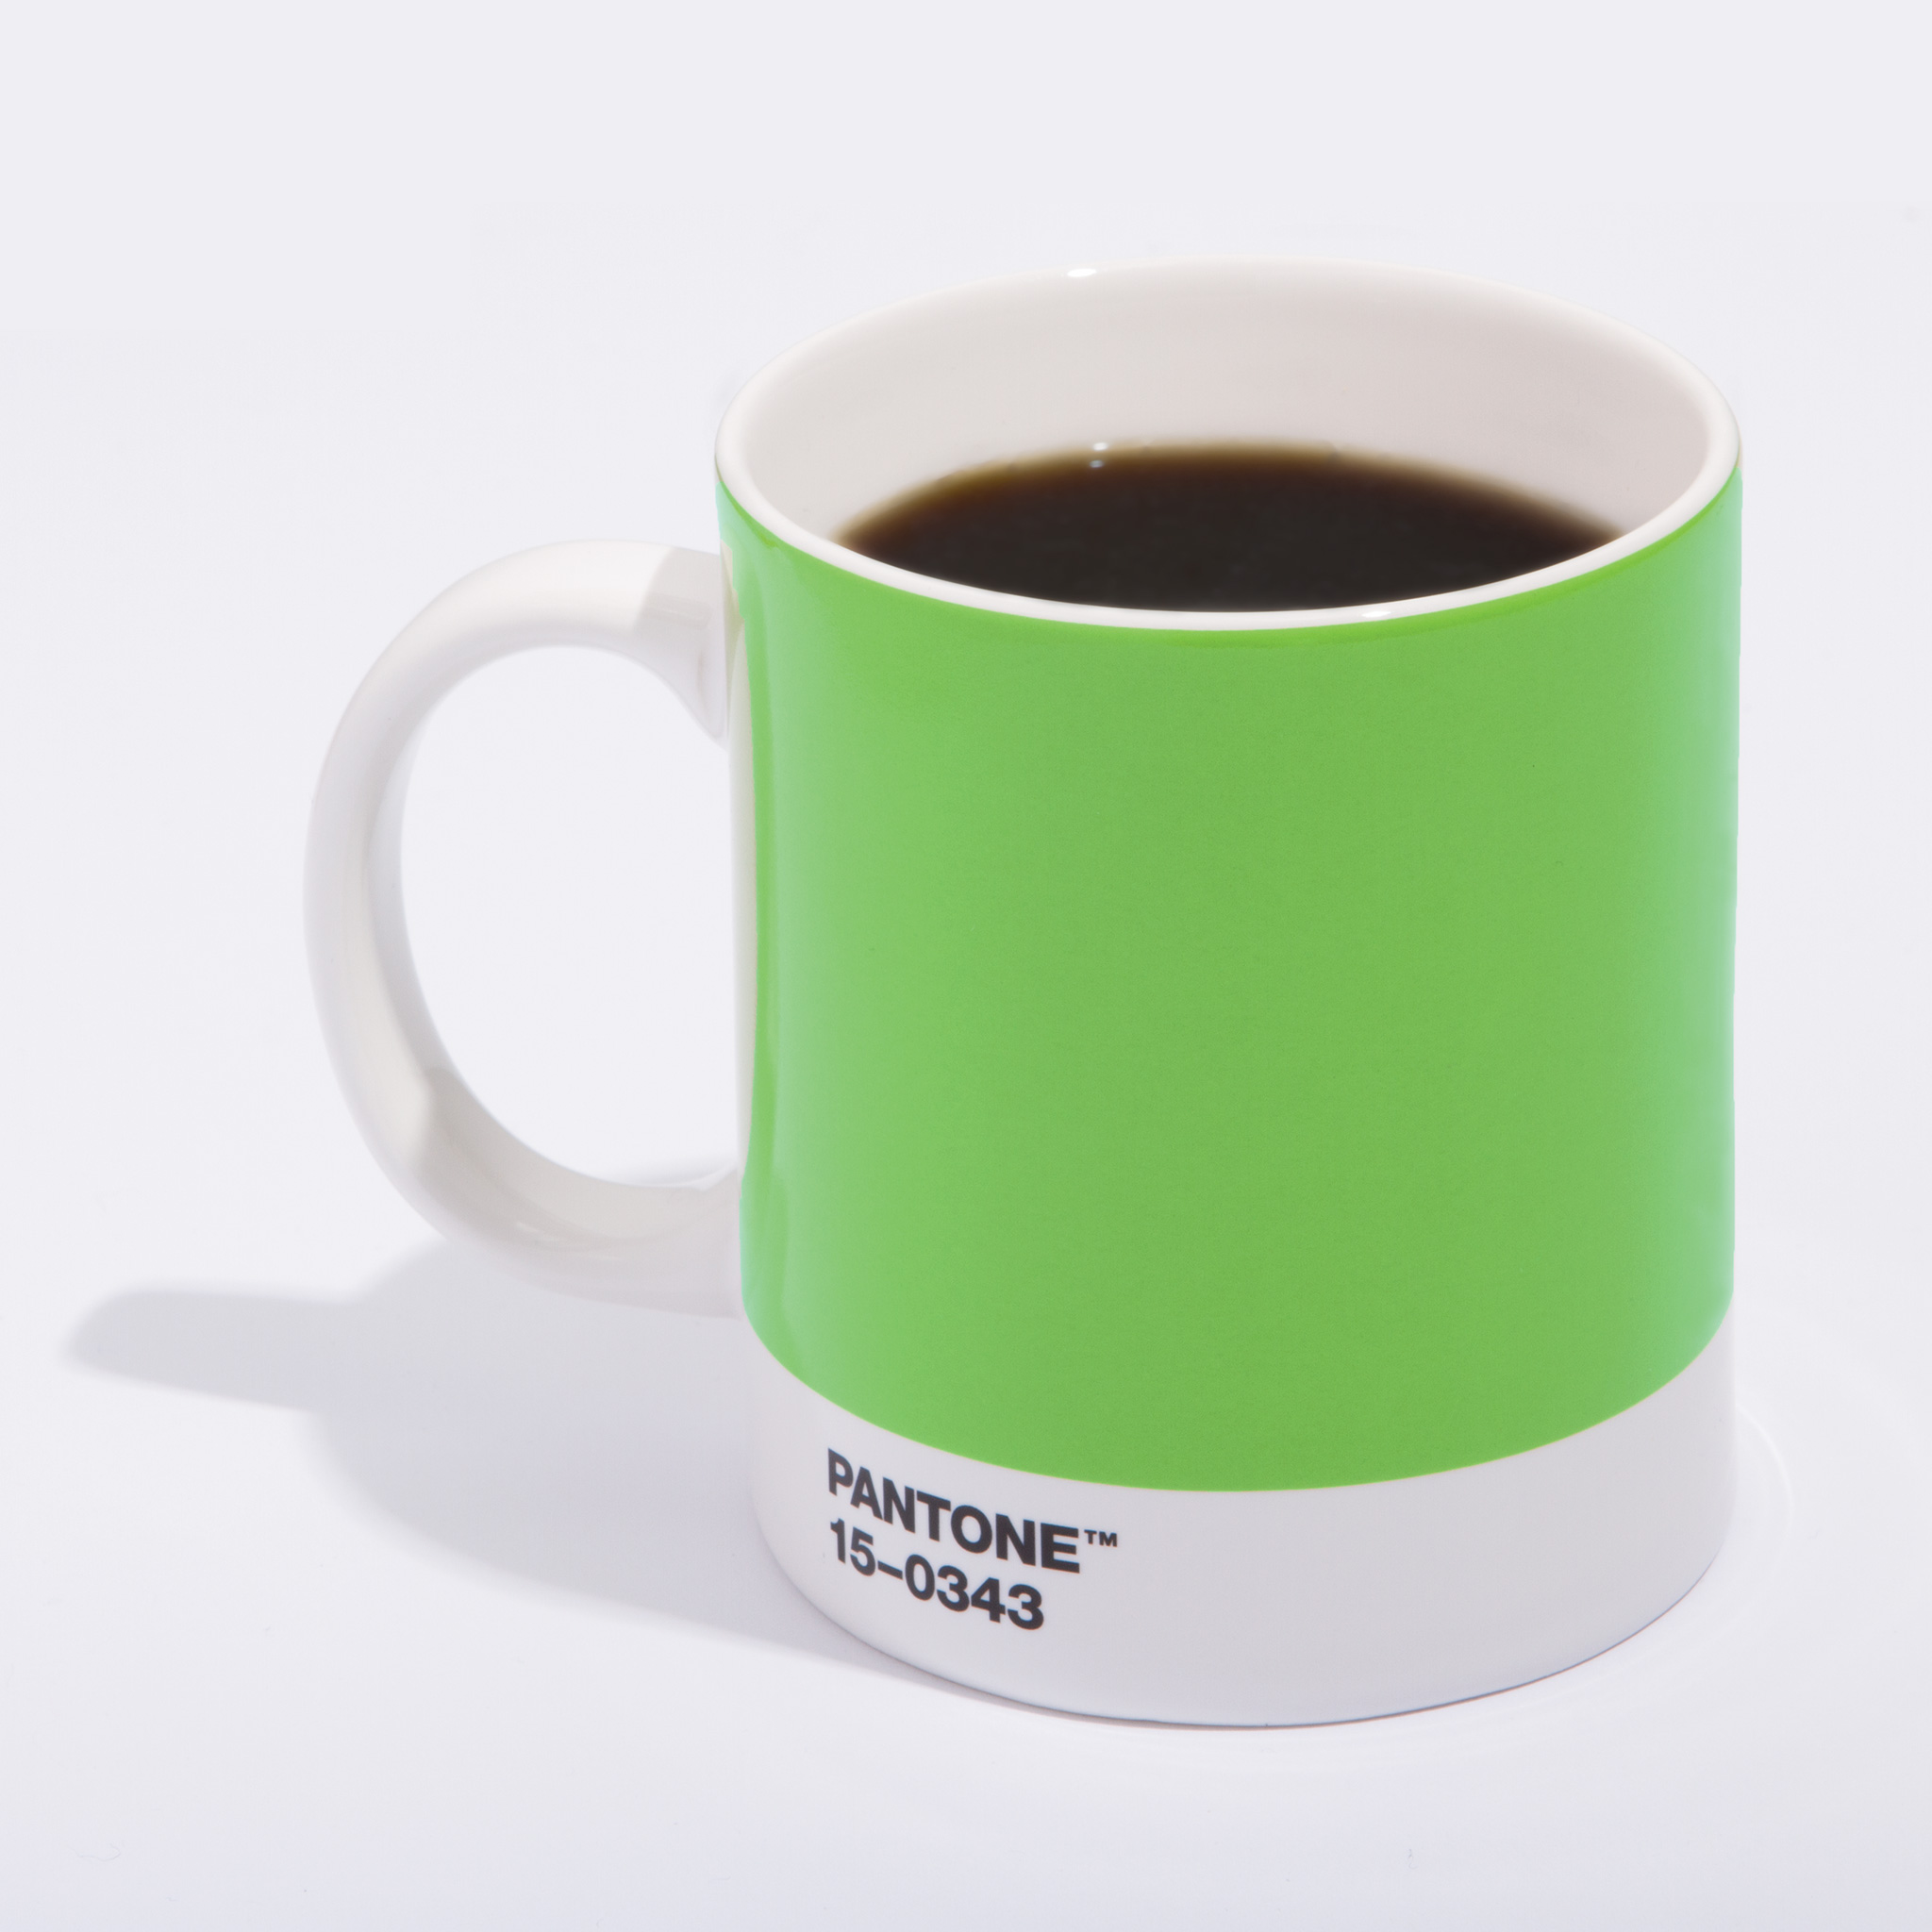 Pantone Color of the Year 2017: PANTONE 15-0343 Greenery Mug